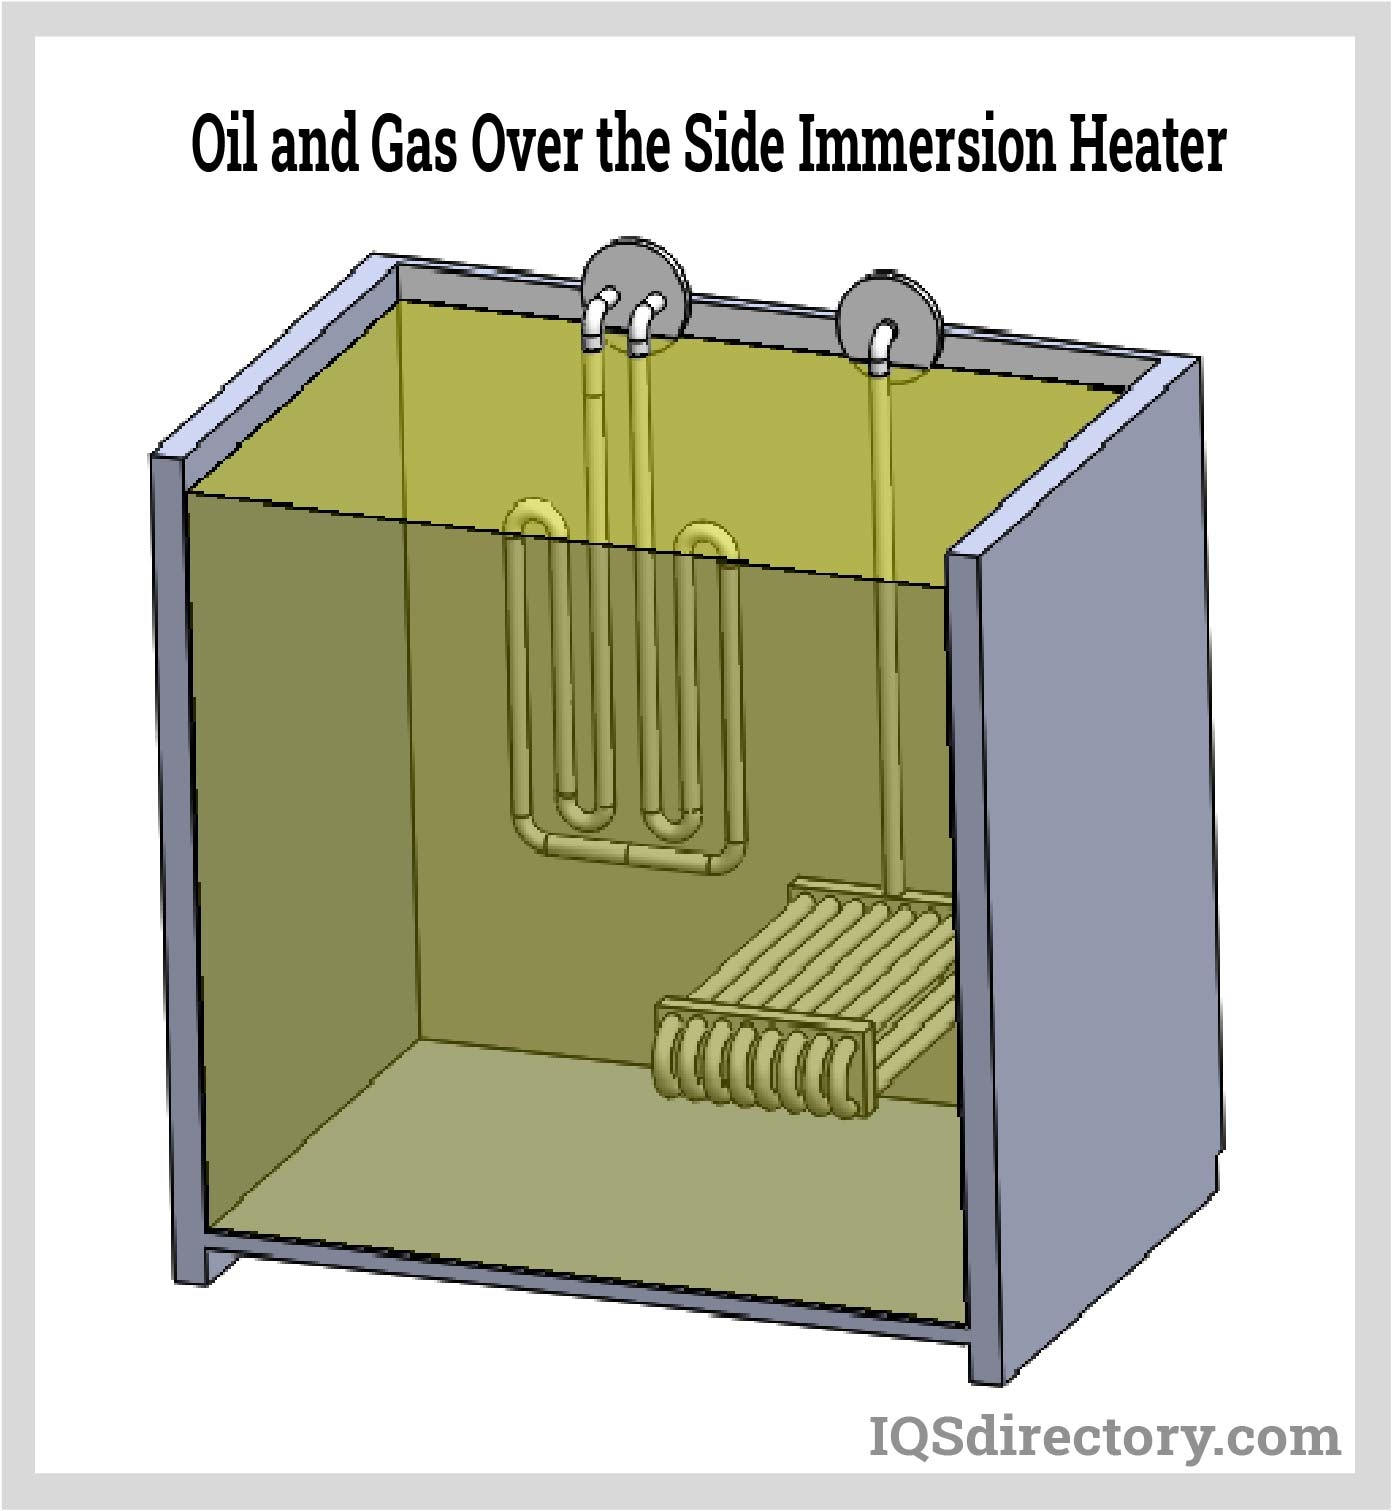 Oil and Gas Over the Side Immersion Heater